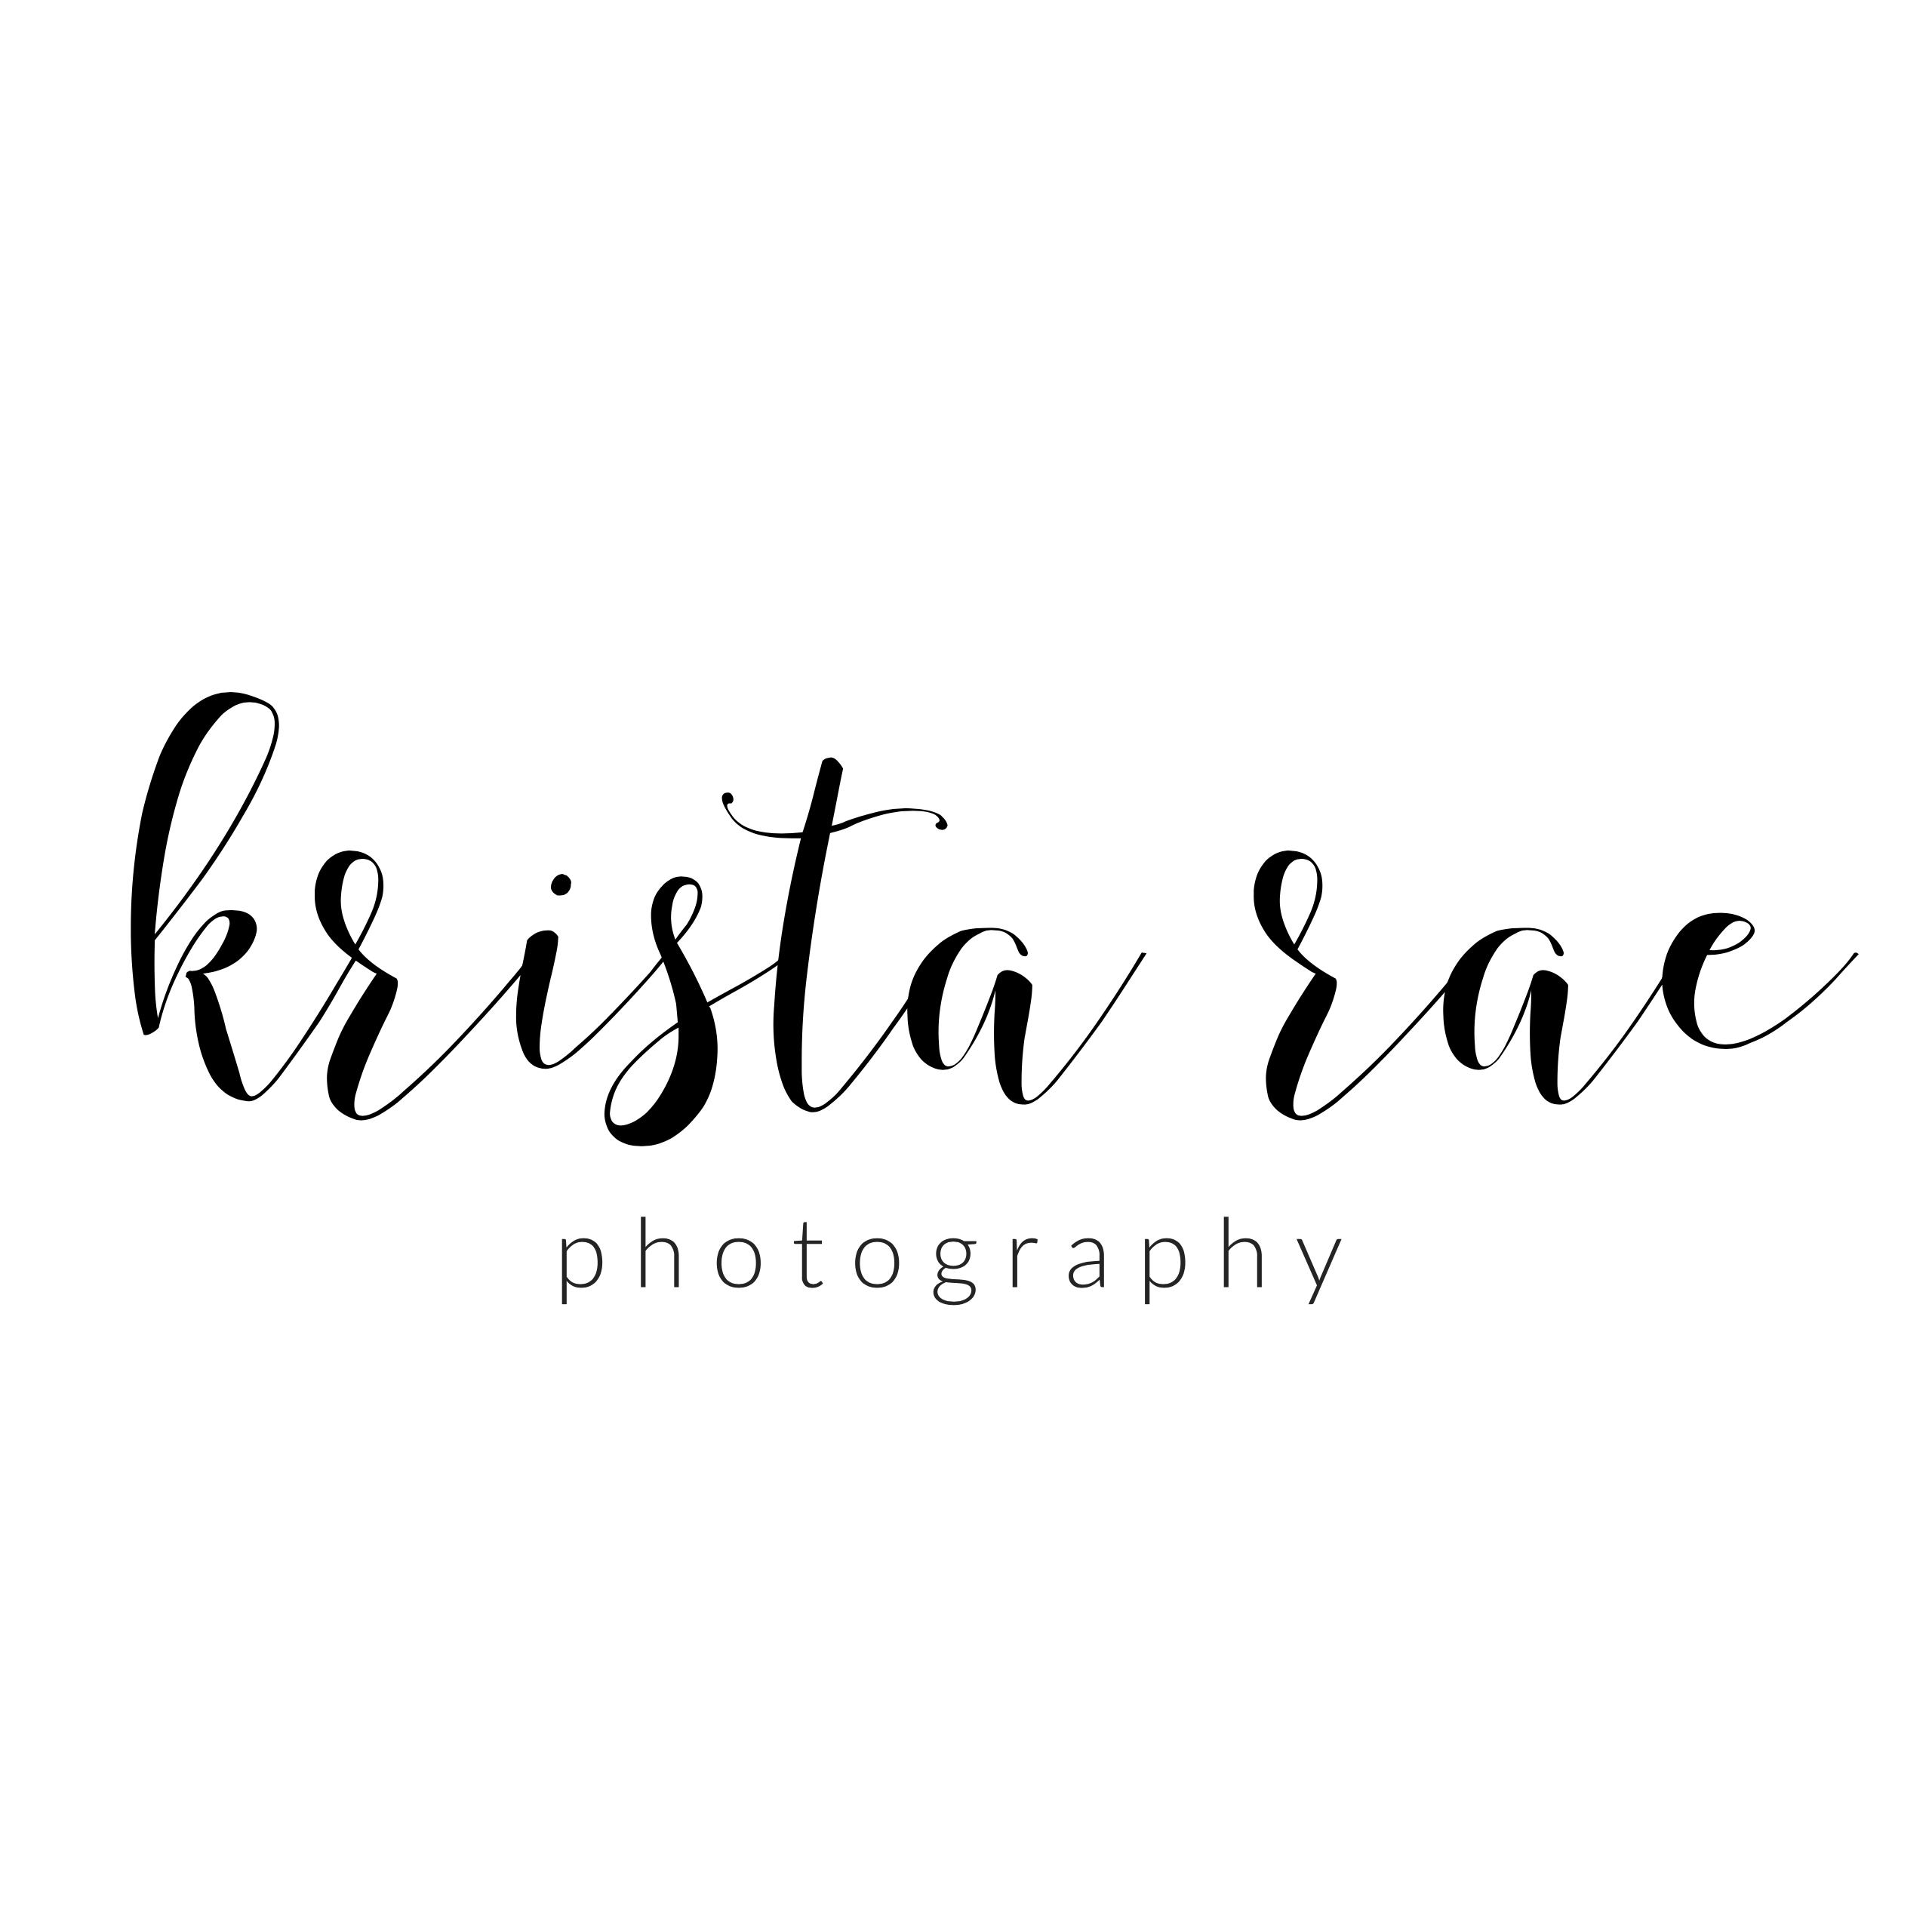 Krista Rae Photography